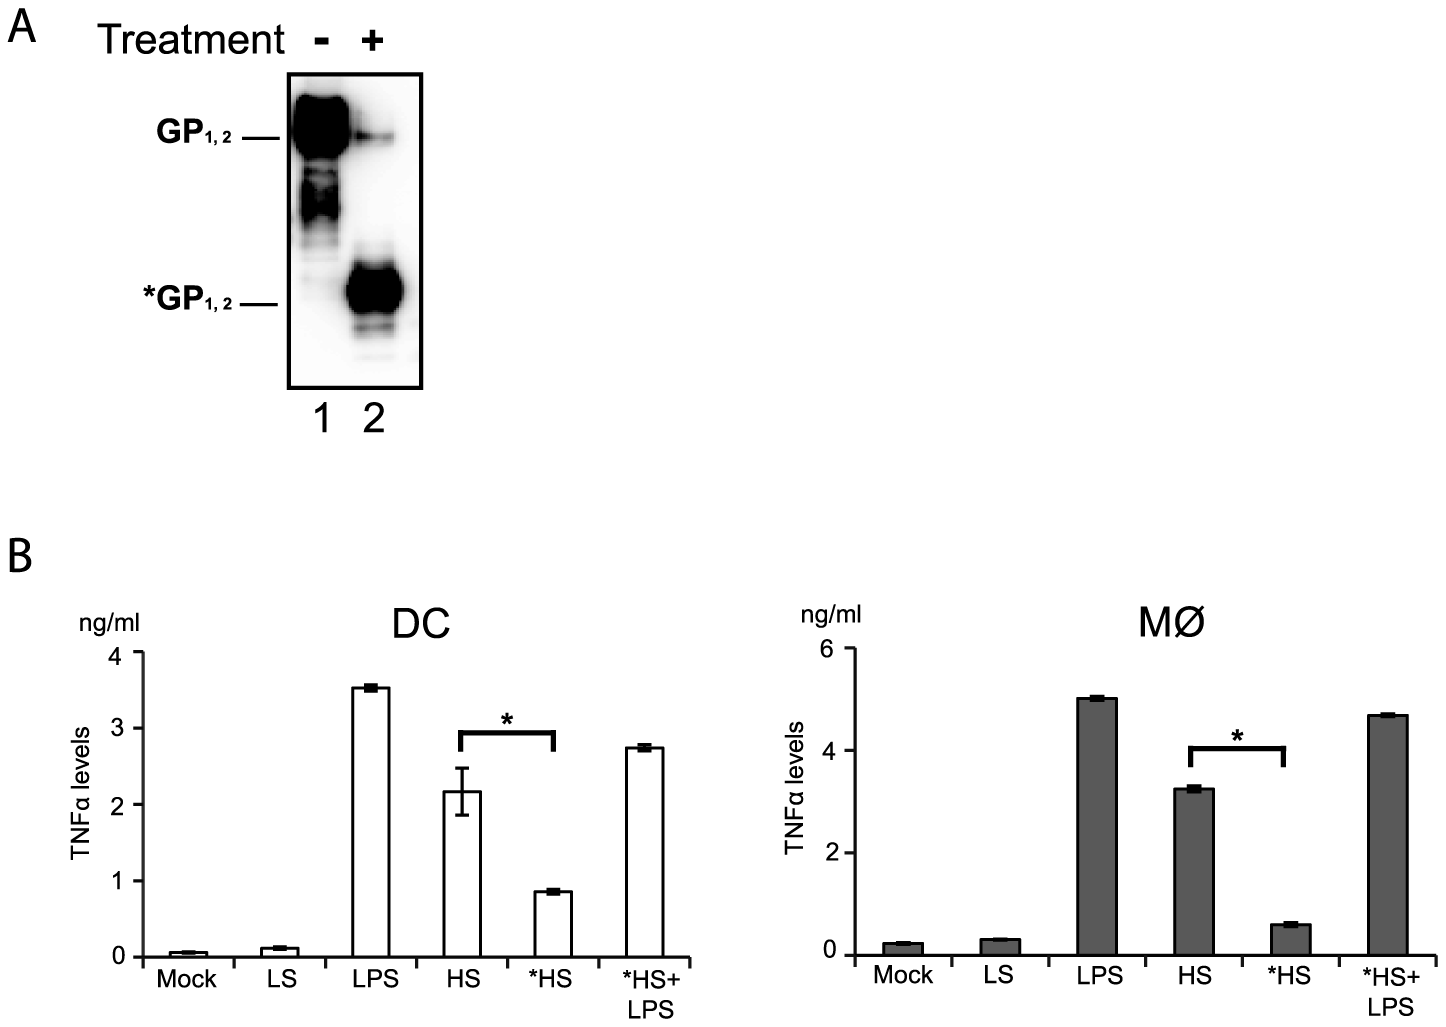 Deglycosylation of shed GP affects activation of DCs and macrophages.